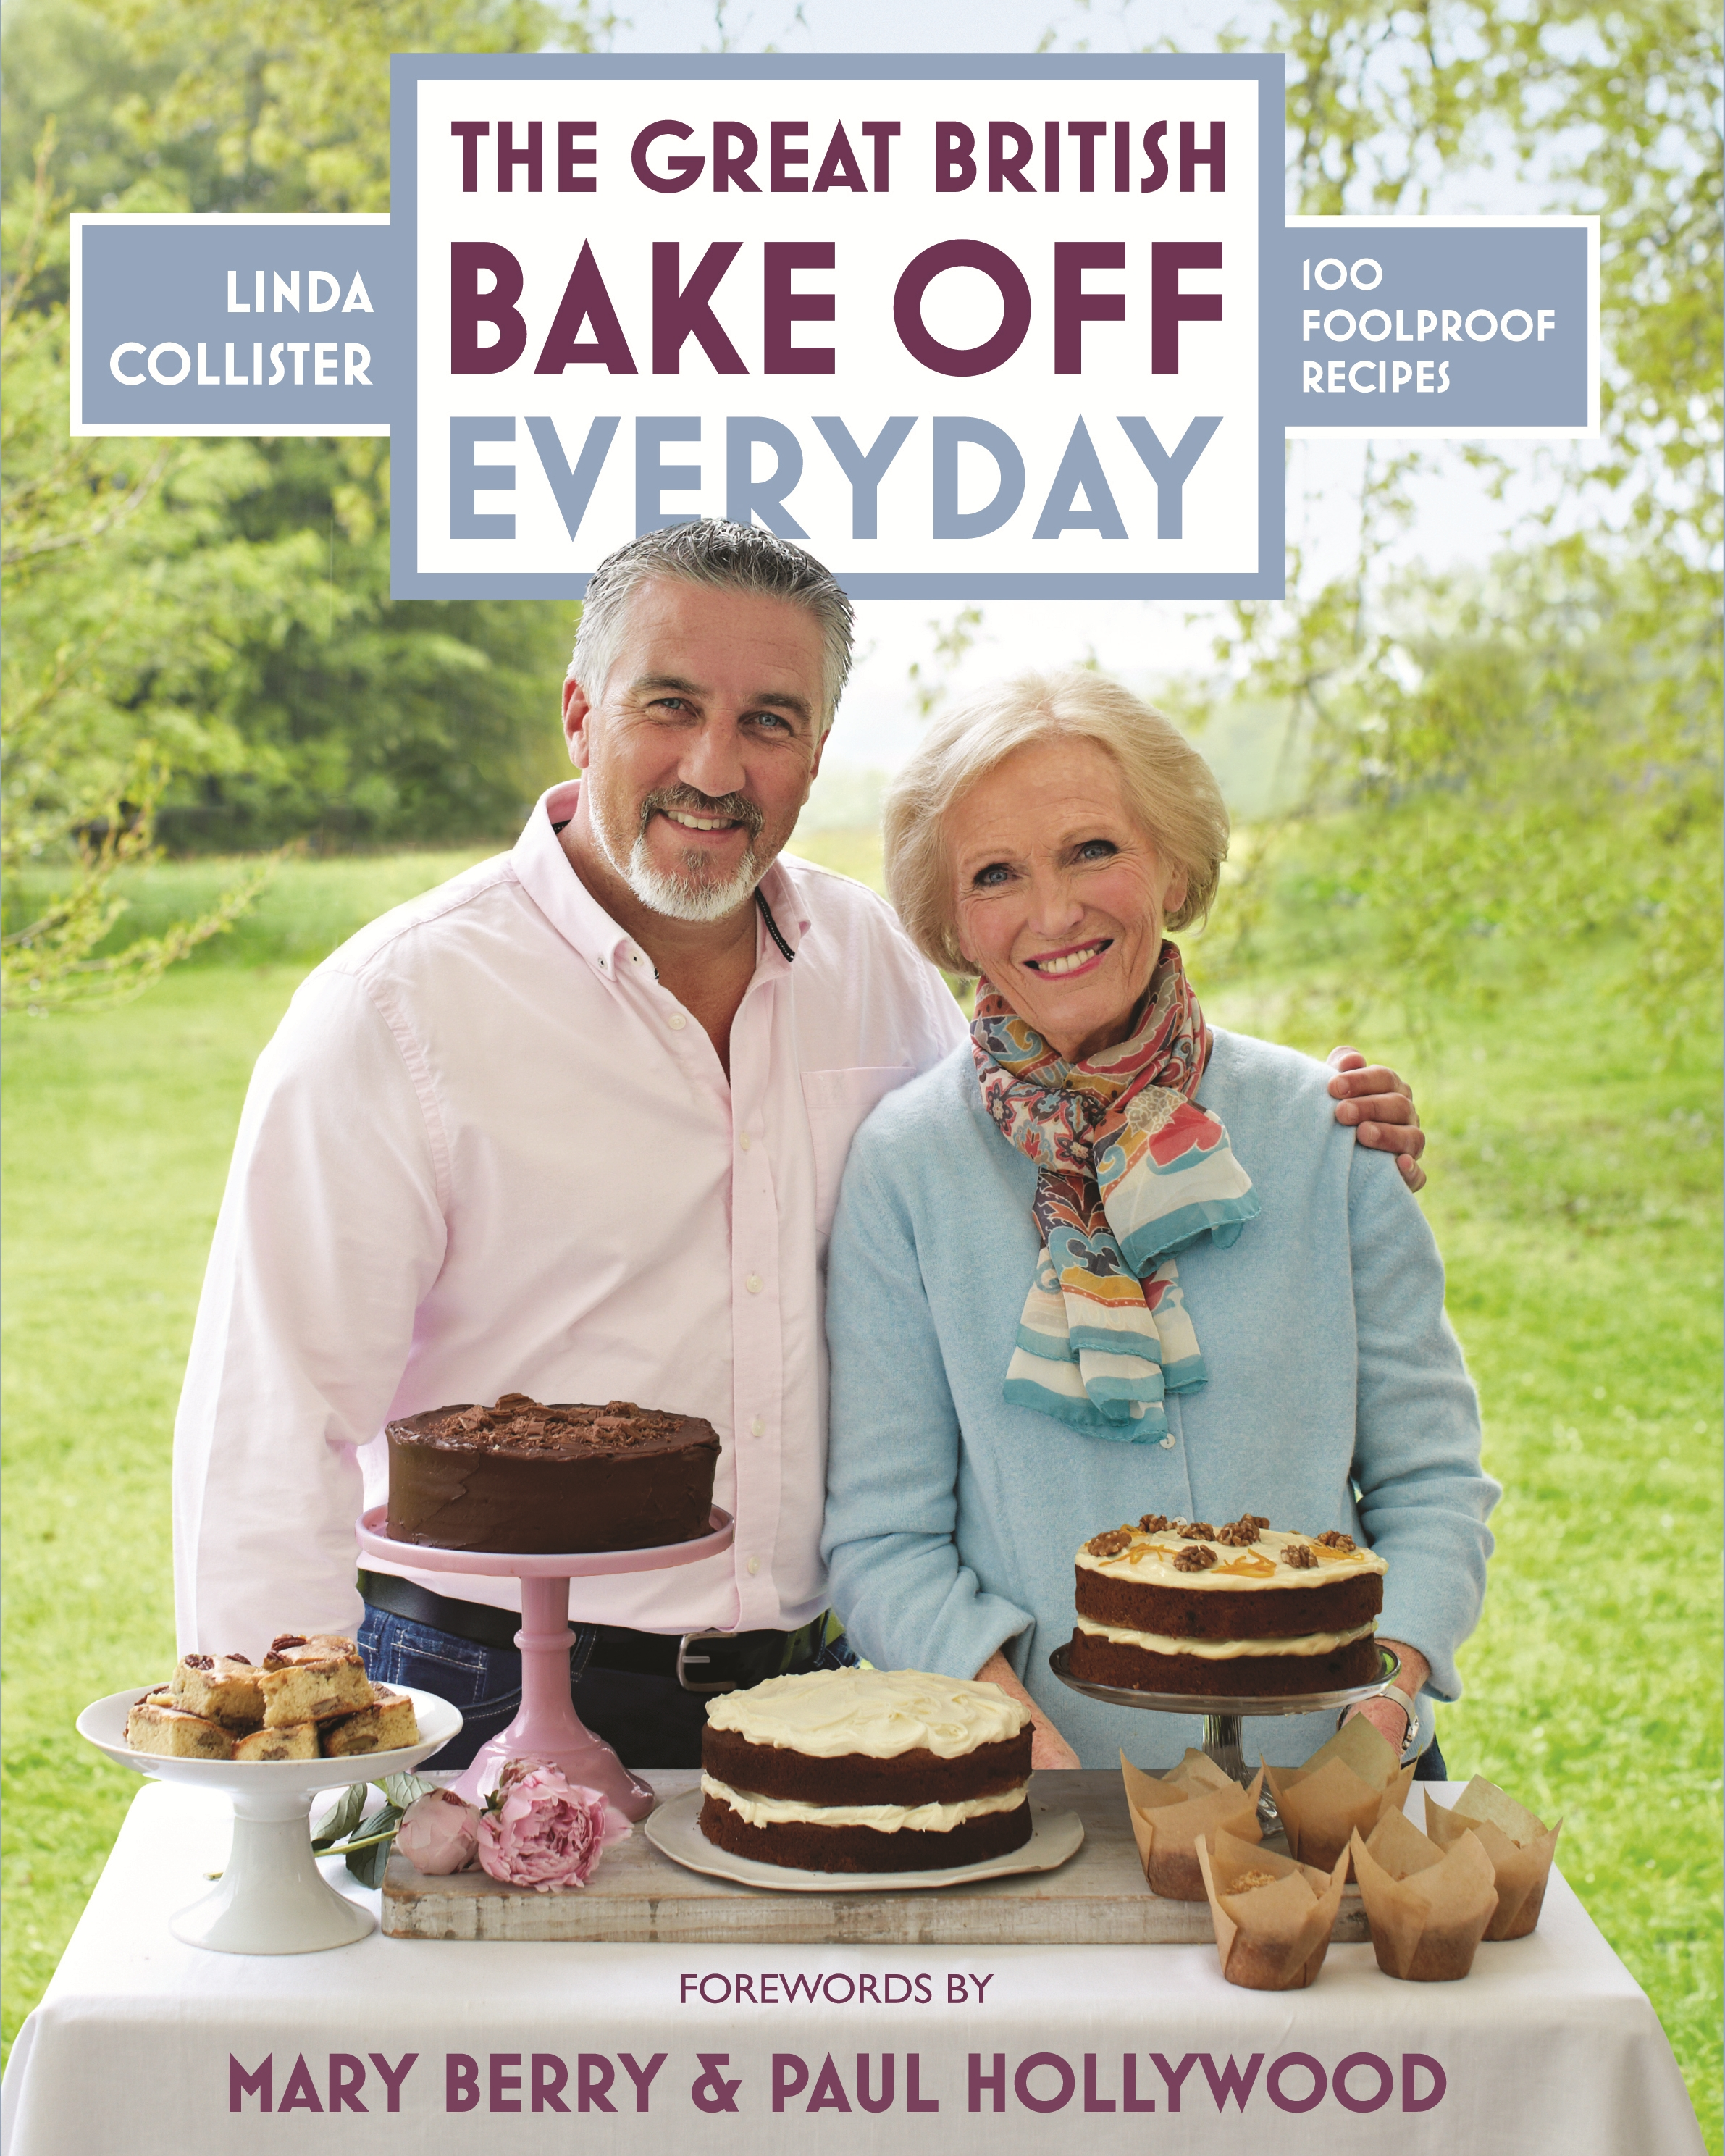 Great British Bake Off: Everyday by Linda Collister